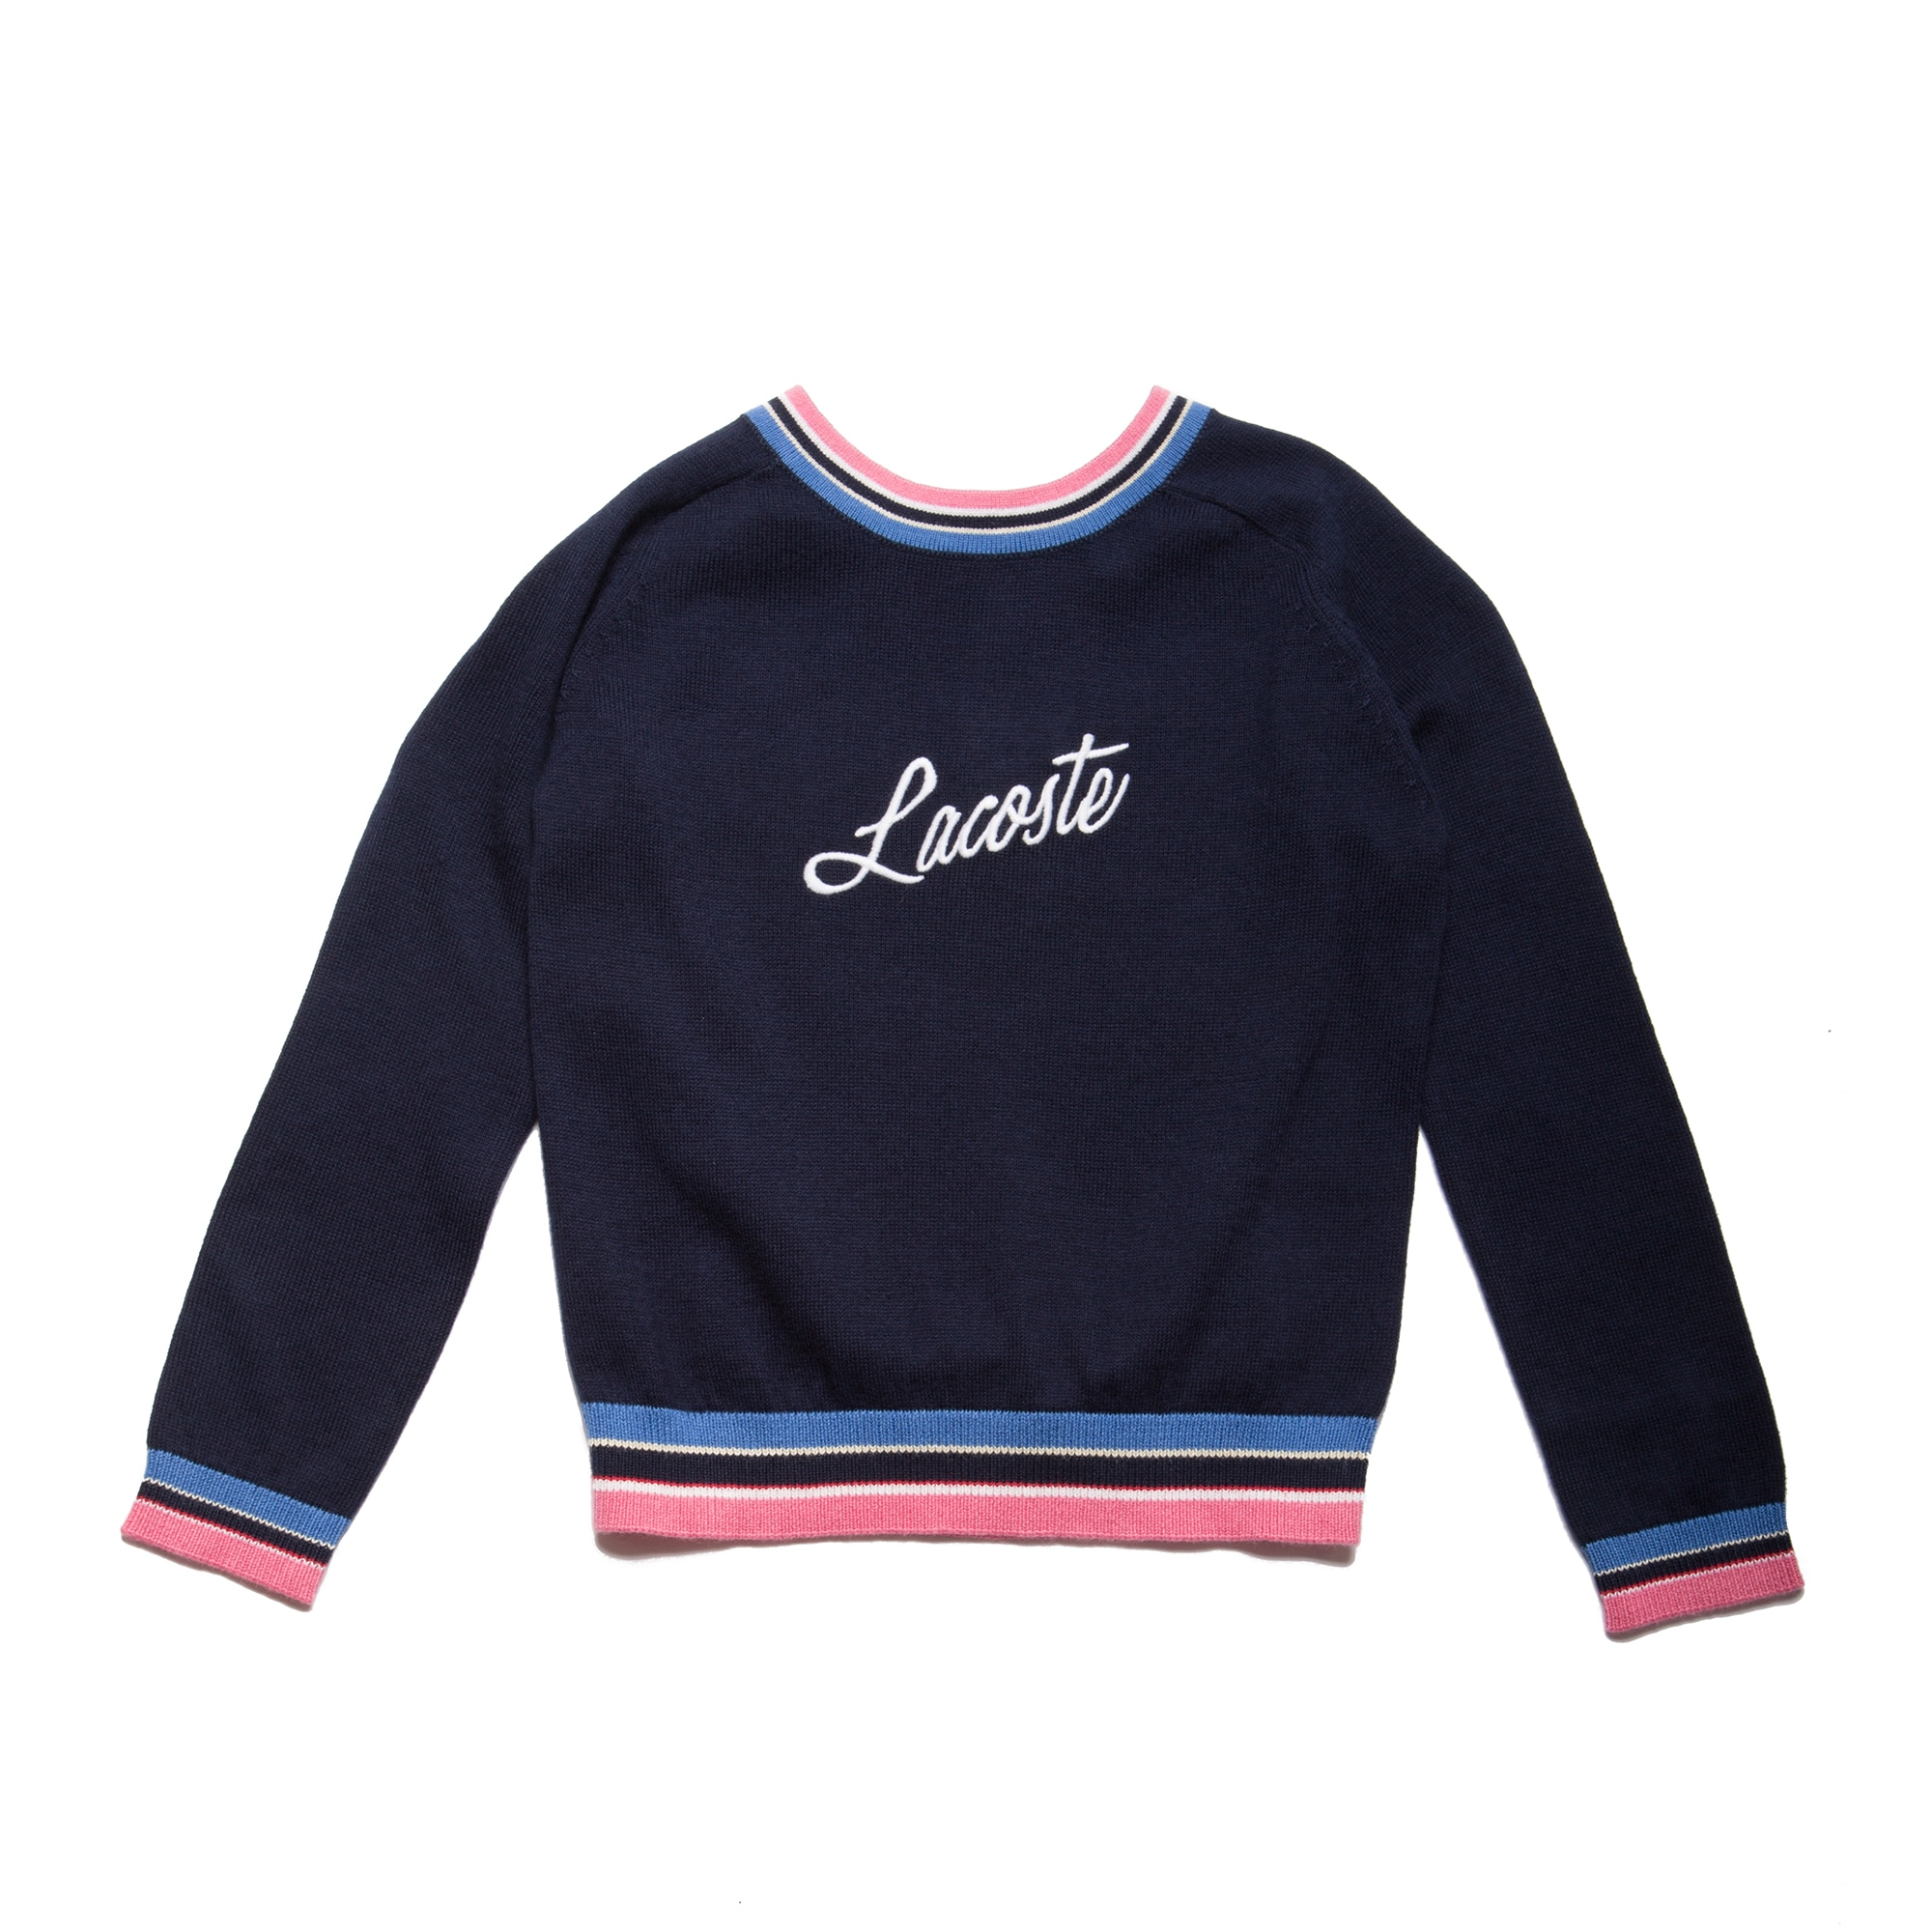 Girls' Crew Neck  Embroidery Jersey Sweater